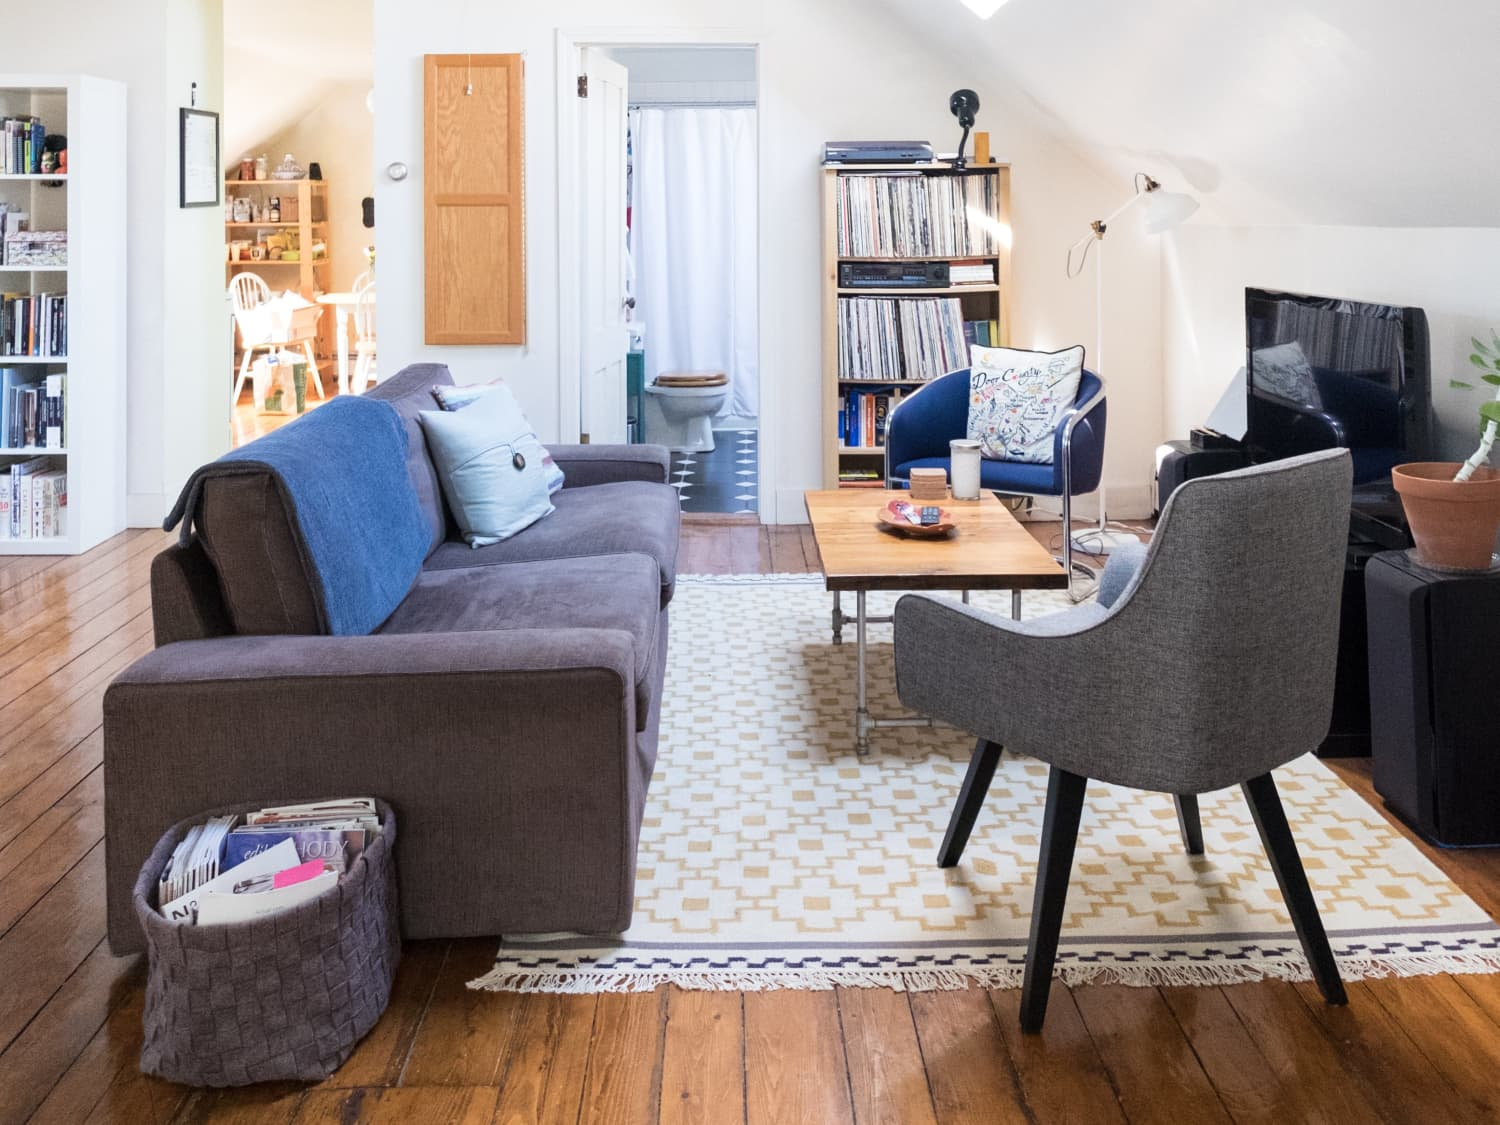 House Tour: Airy Attic Apartment in Providence | Apartment Therapy